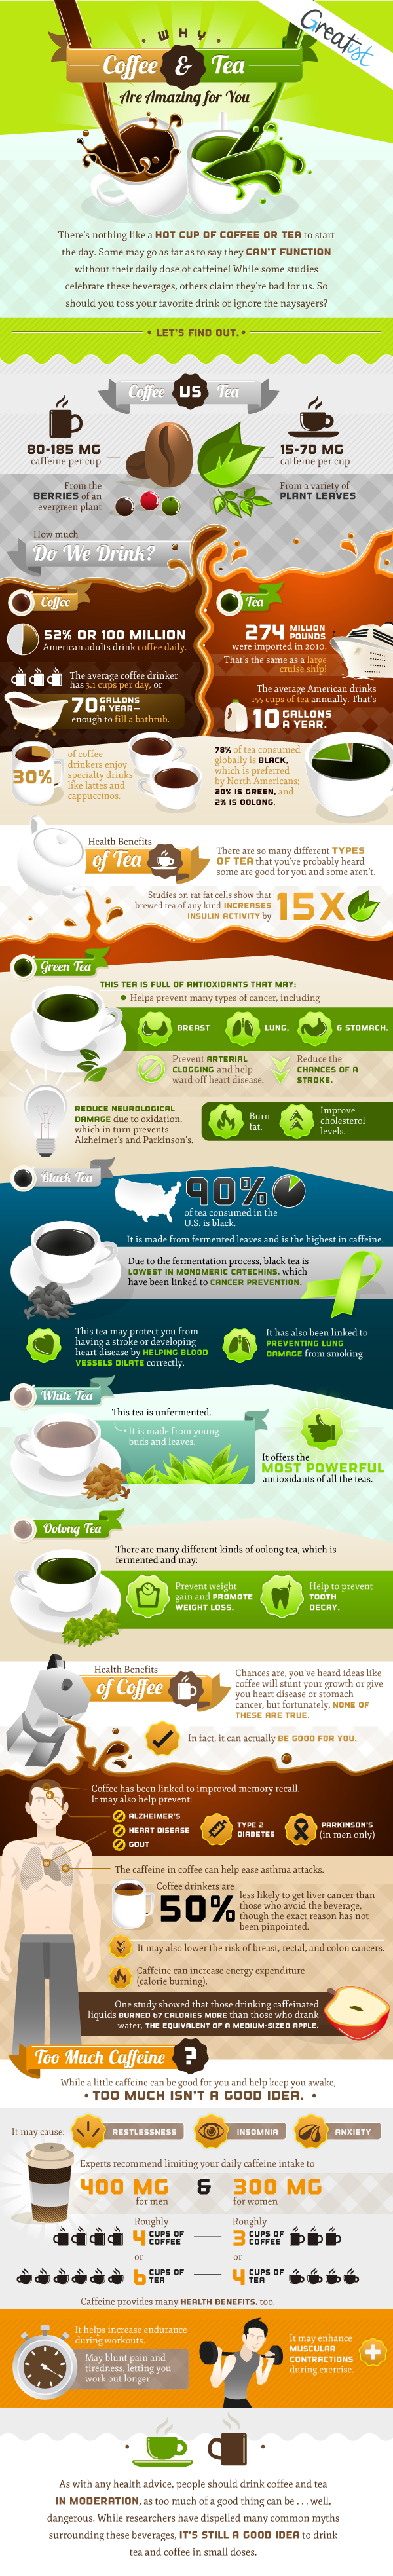 Why Coffee & Tea Are Amazing for You by Greatist